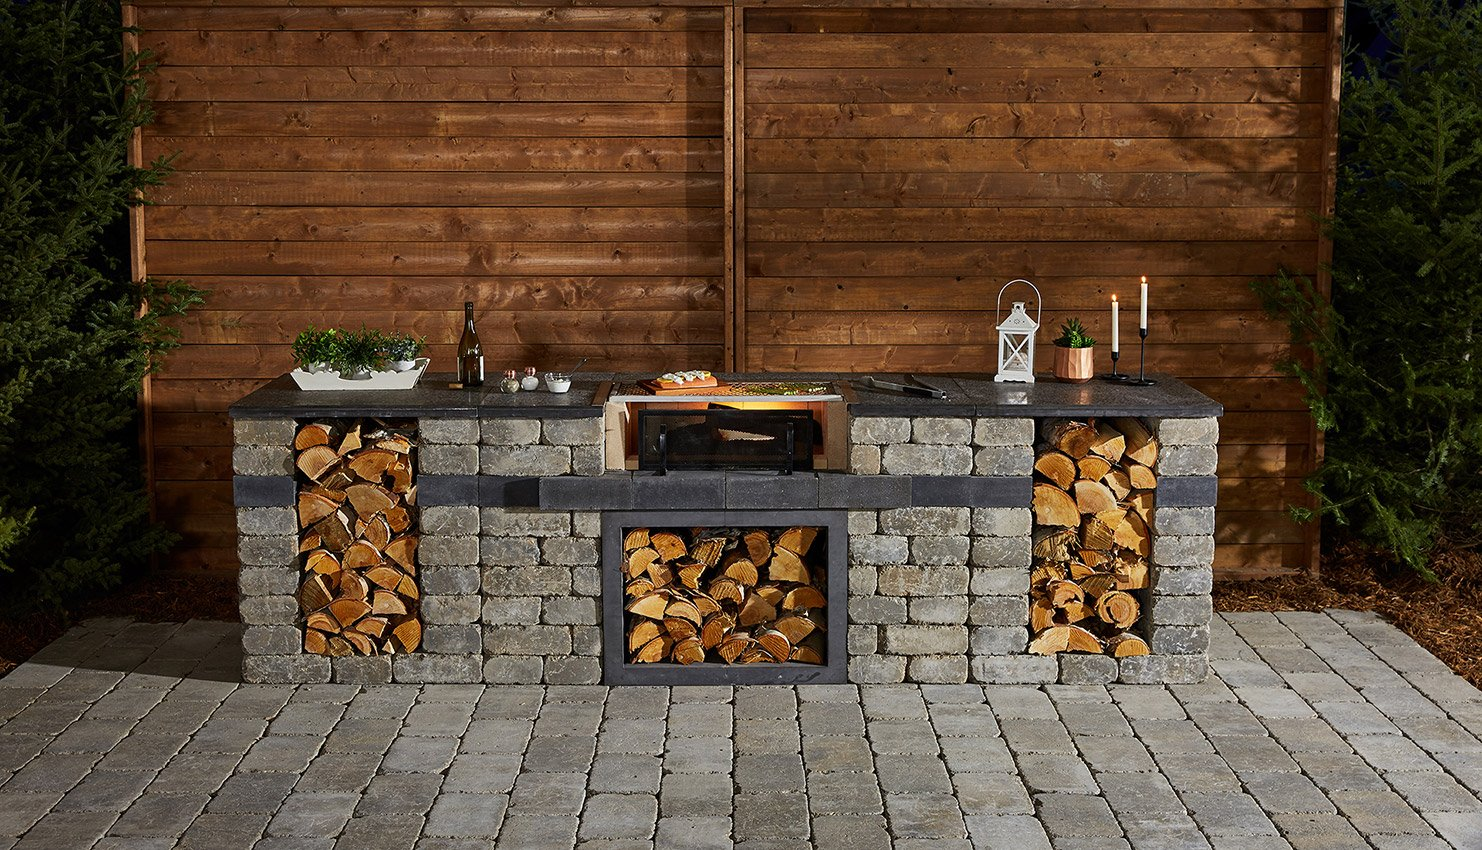 Quarry Stone Wood Grill Create Your Own Camping Cooking Experience Barkman Concrete